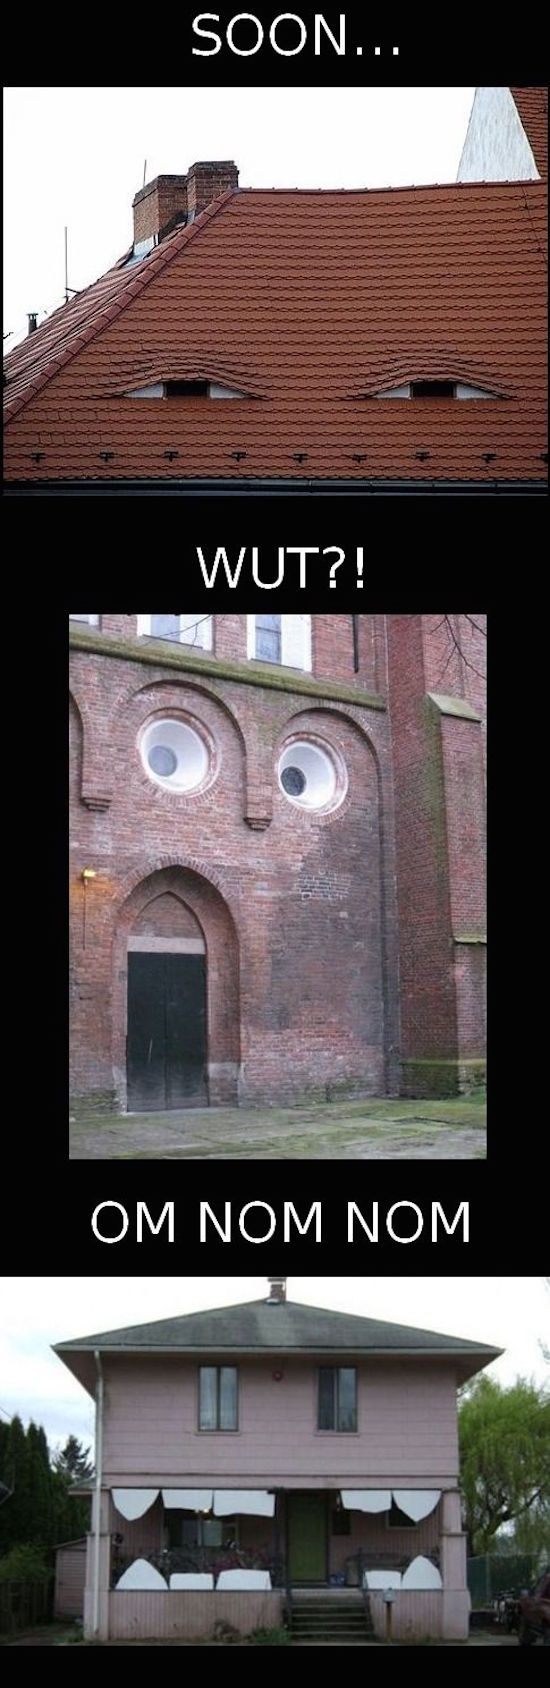 funny photo of houses with faces